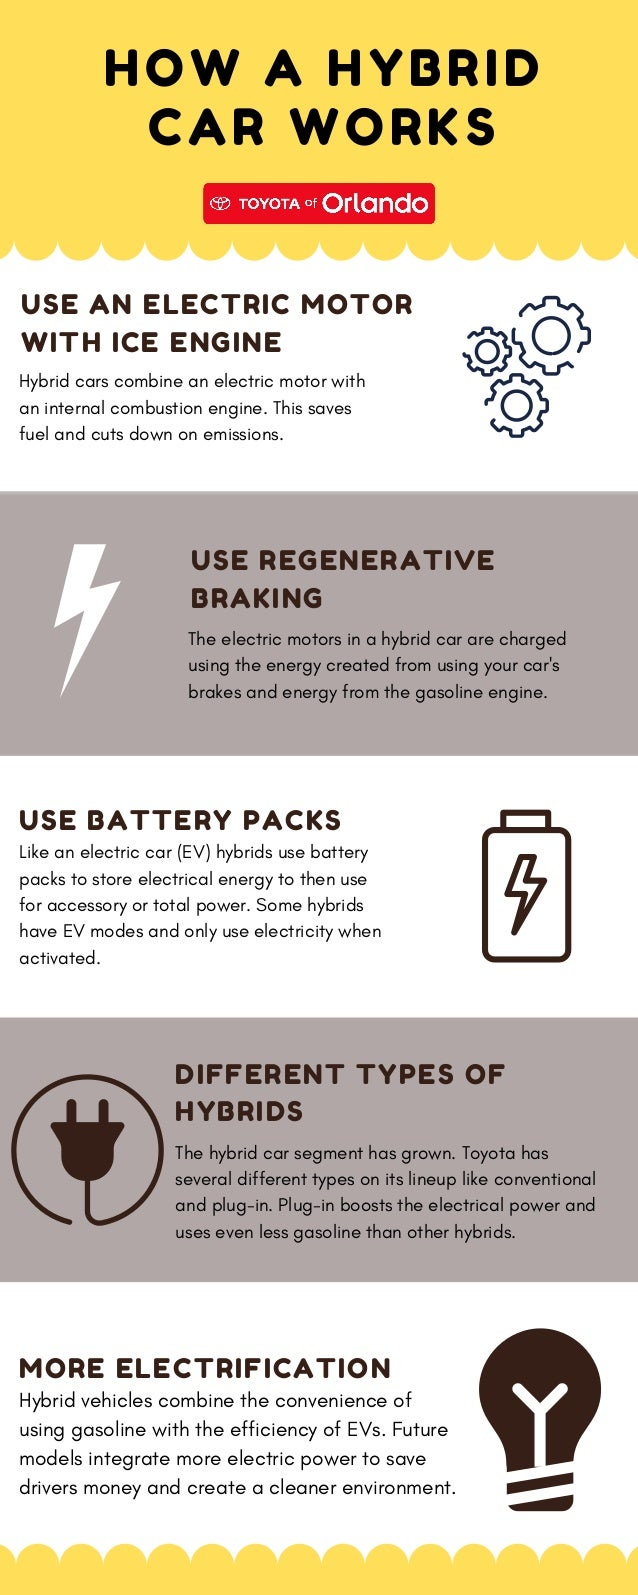 HOW A HYBRID CAR WORKS DIFFERENT TYPES OF HYBRIDS The hybrid car segment has grown. Toyota has several different types on ...